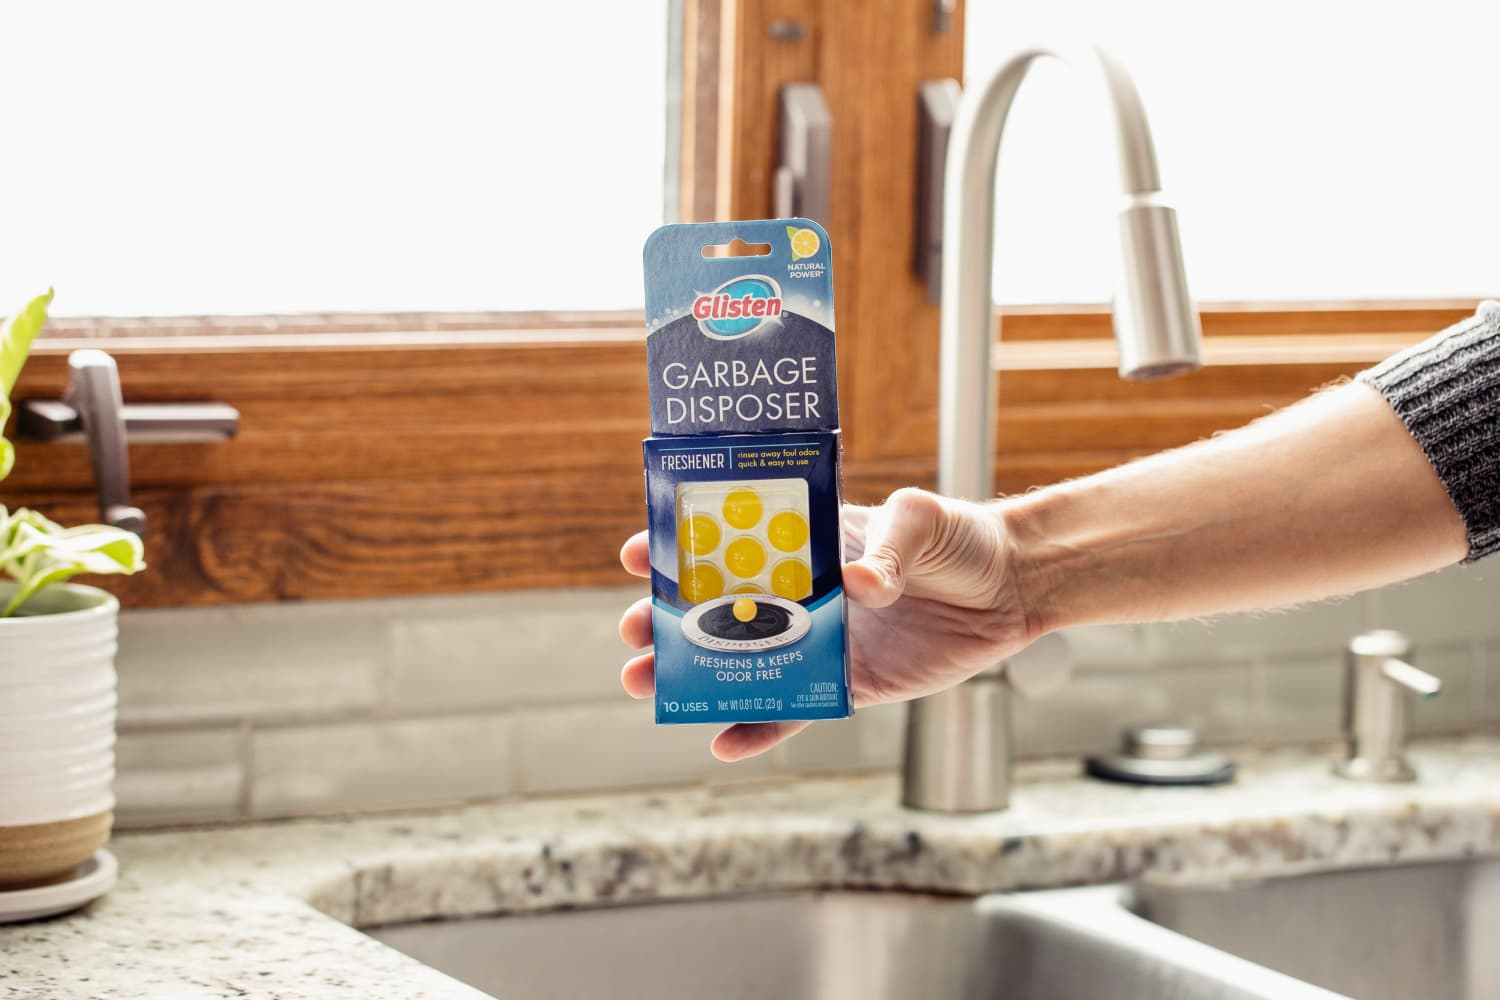 I Tried the Bestselling Garbage Disposal Cleaner on Amazon — Here's My Honest Review